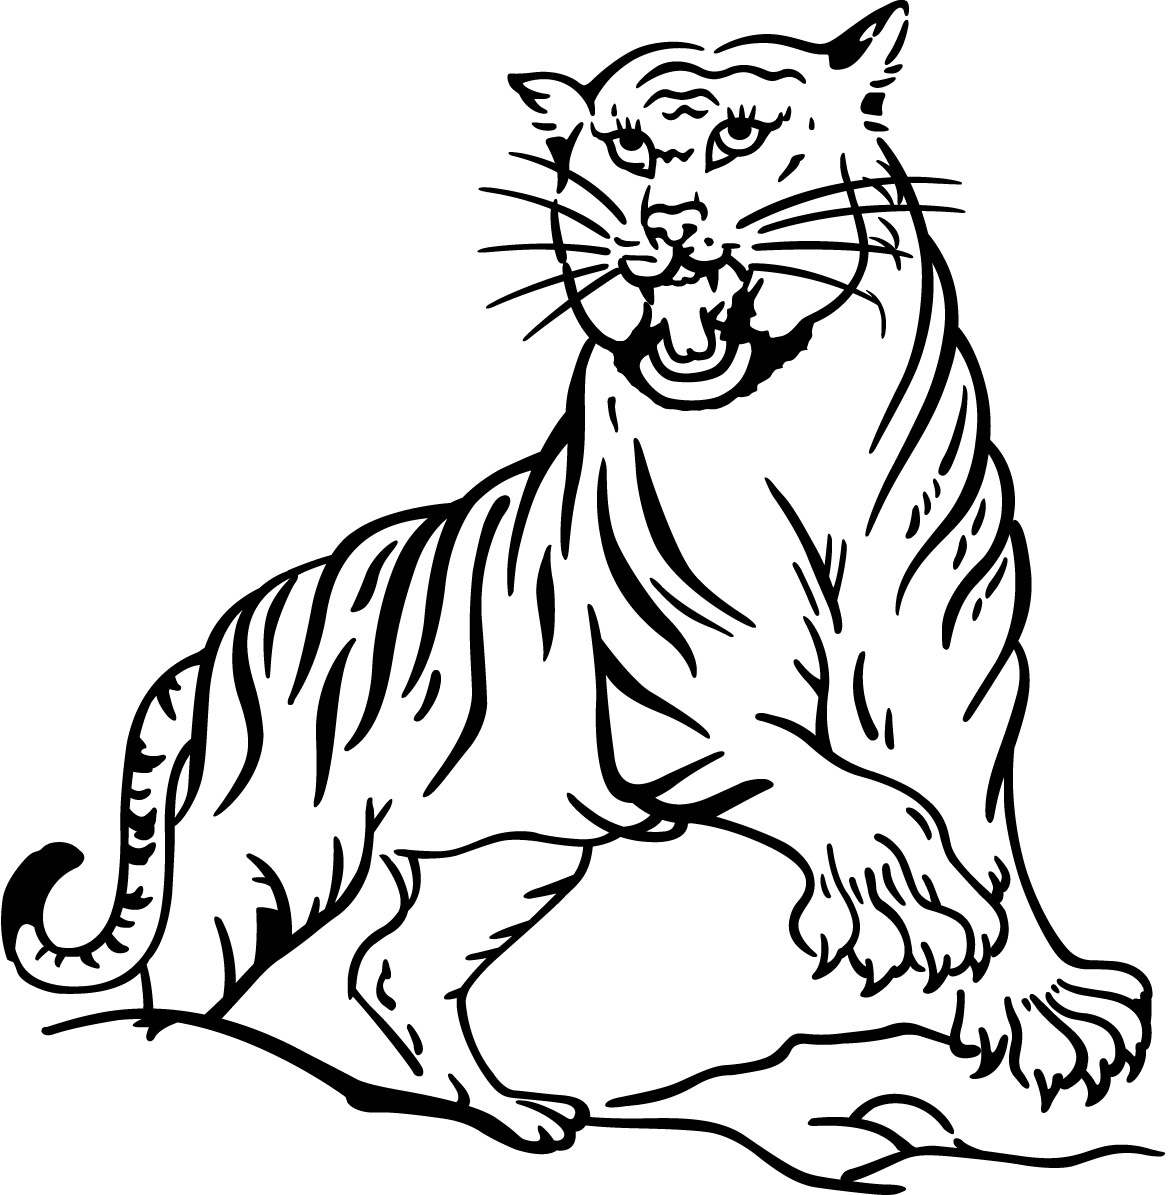 daniel tiger coloring pages - Things To Color For Kids